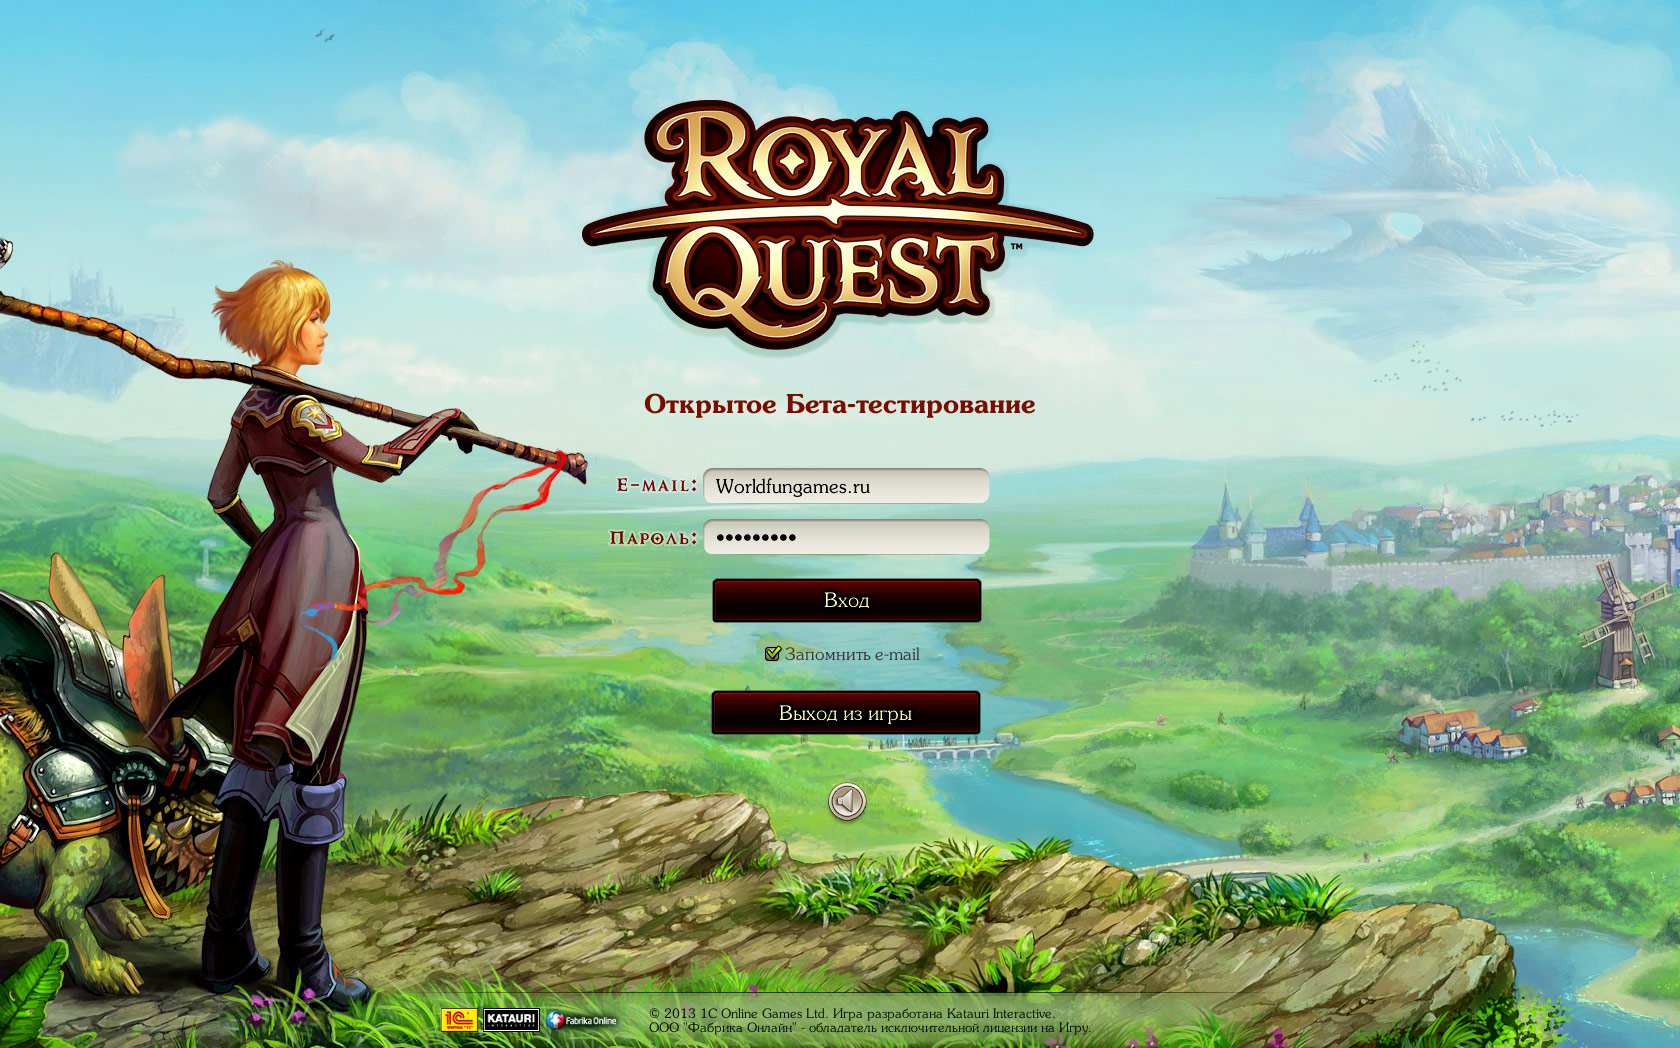 WorldfunGames_royal-quest2